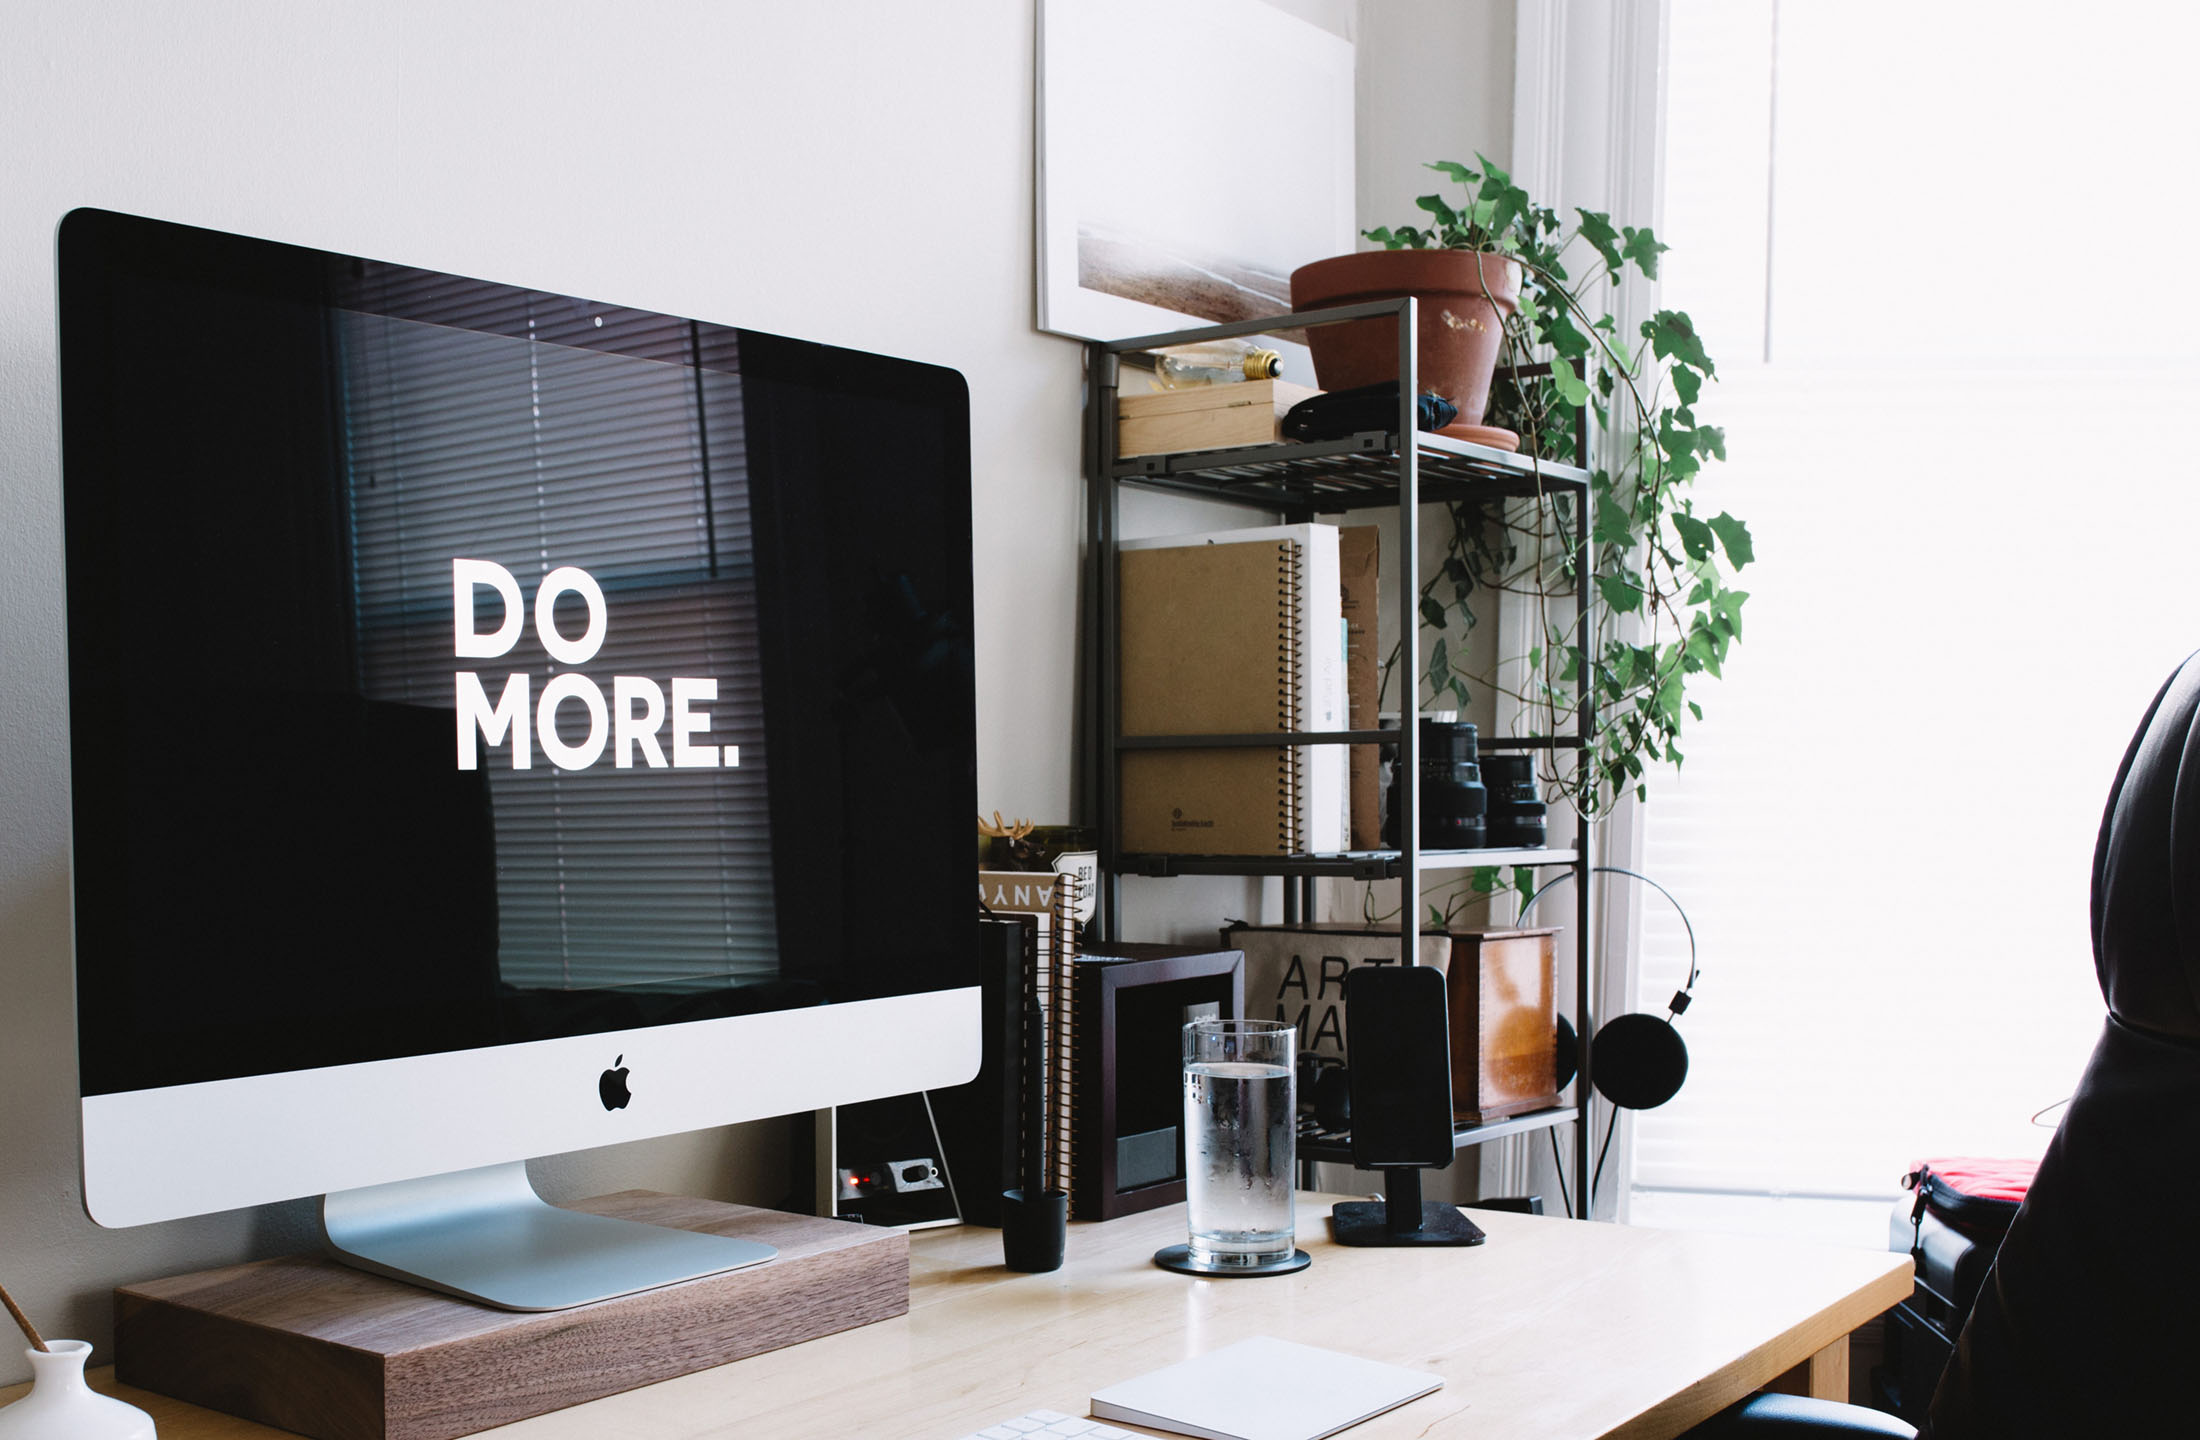 Business work from home desk computer says Do More indoor plants organized shelf